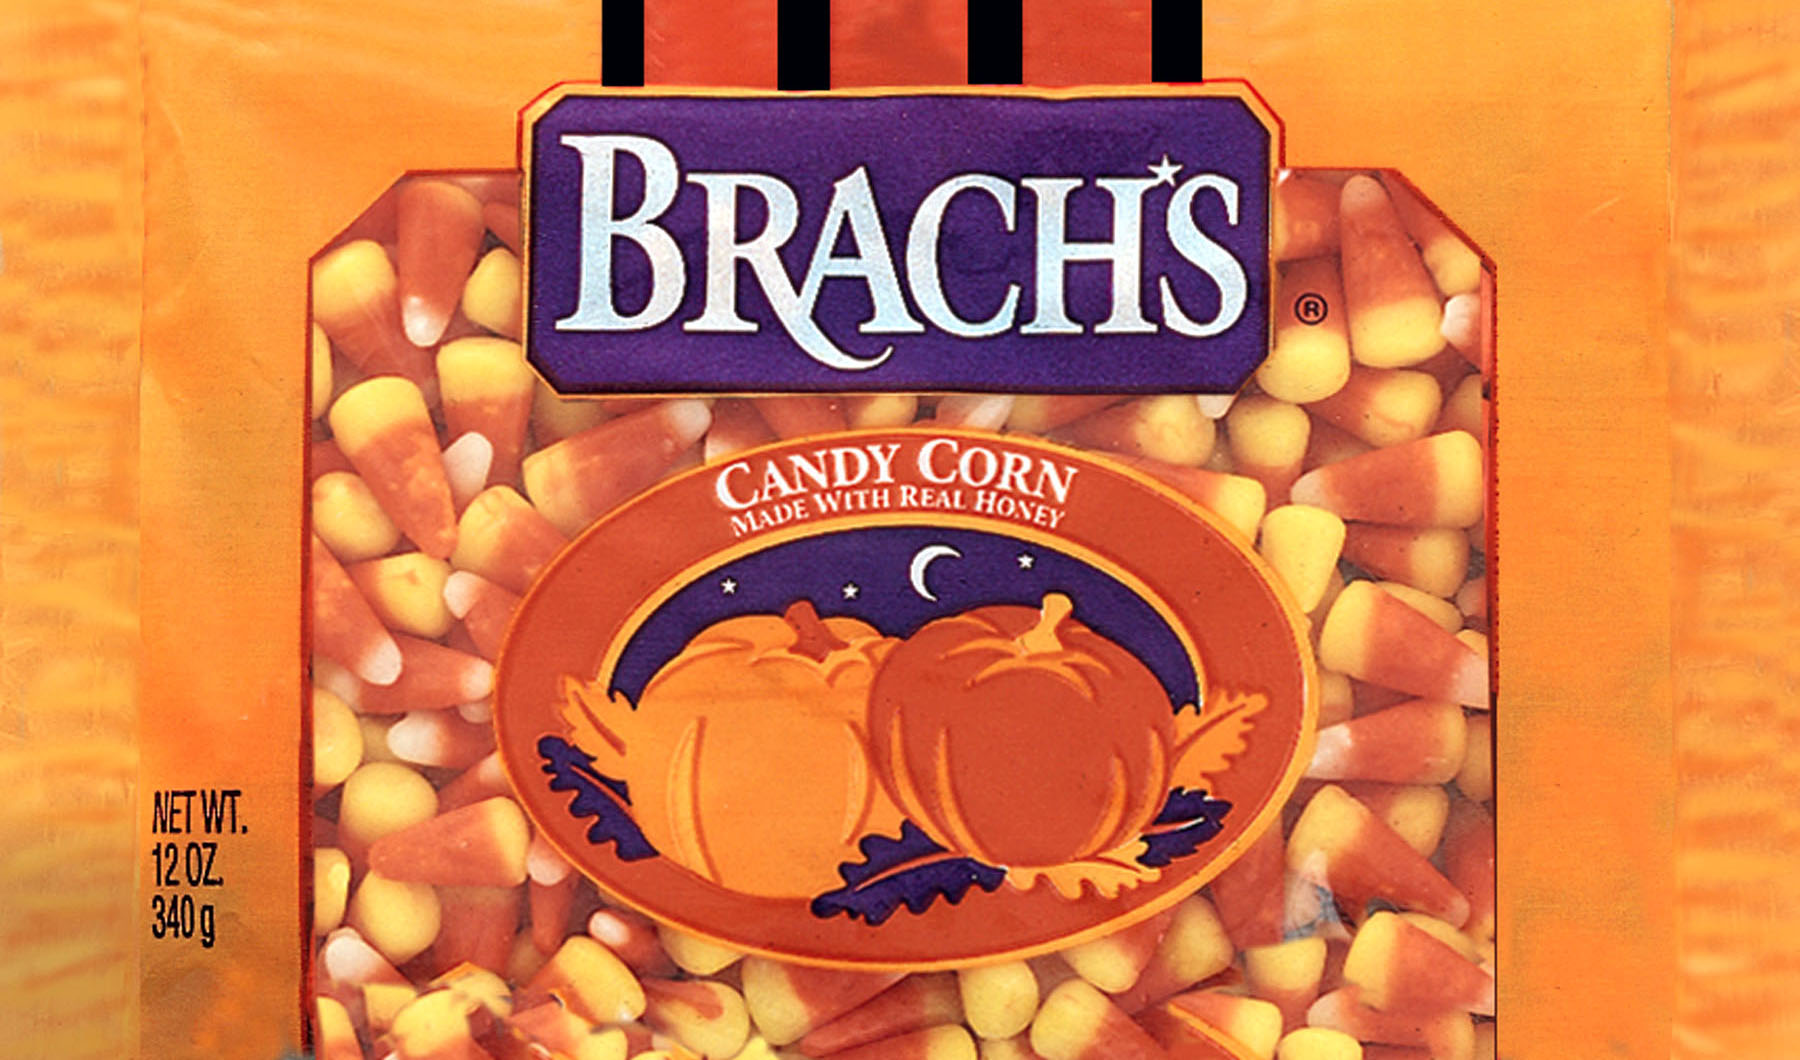 5 candy corn facts you may not know